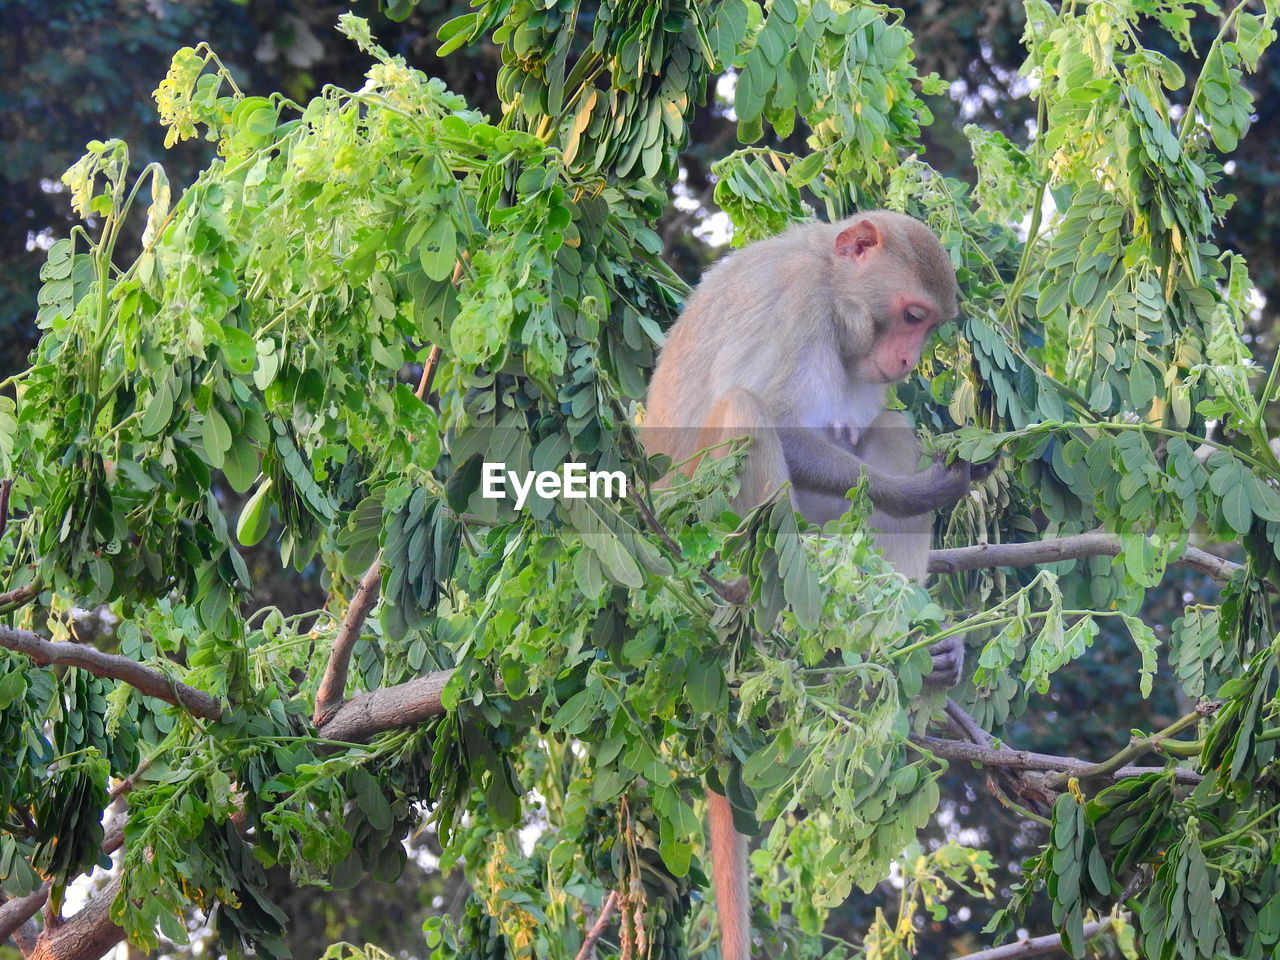 primate, monkey, animal wildlife, animal, animals in the wild, animal themes, mammal, plant, one animal, tree, vertebrate, leaf, plant part, nature, growth, green color, no people, forest, branch, day, outdoors, baboon, rainforest